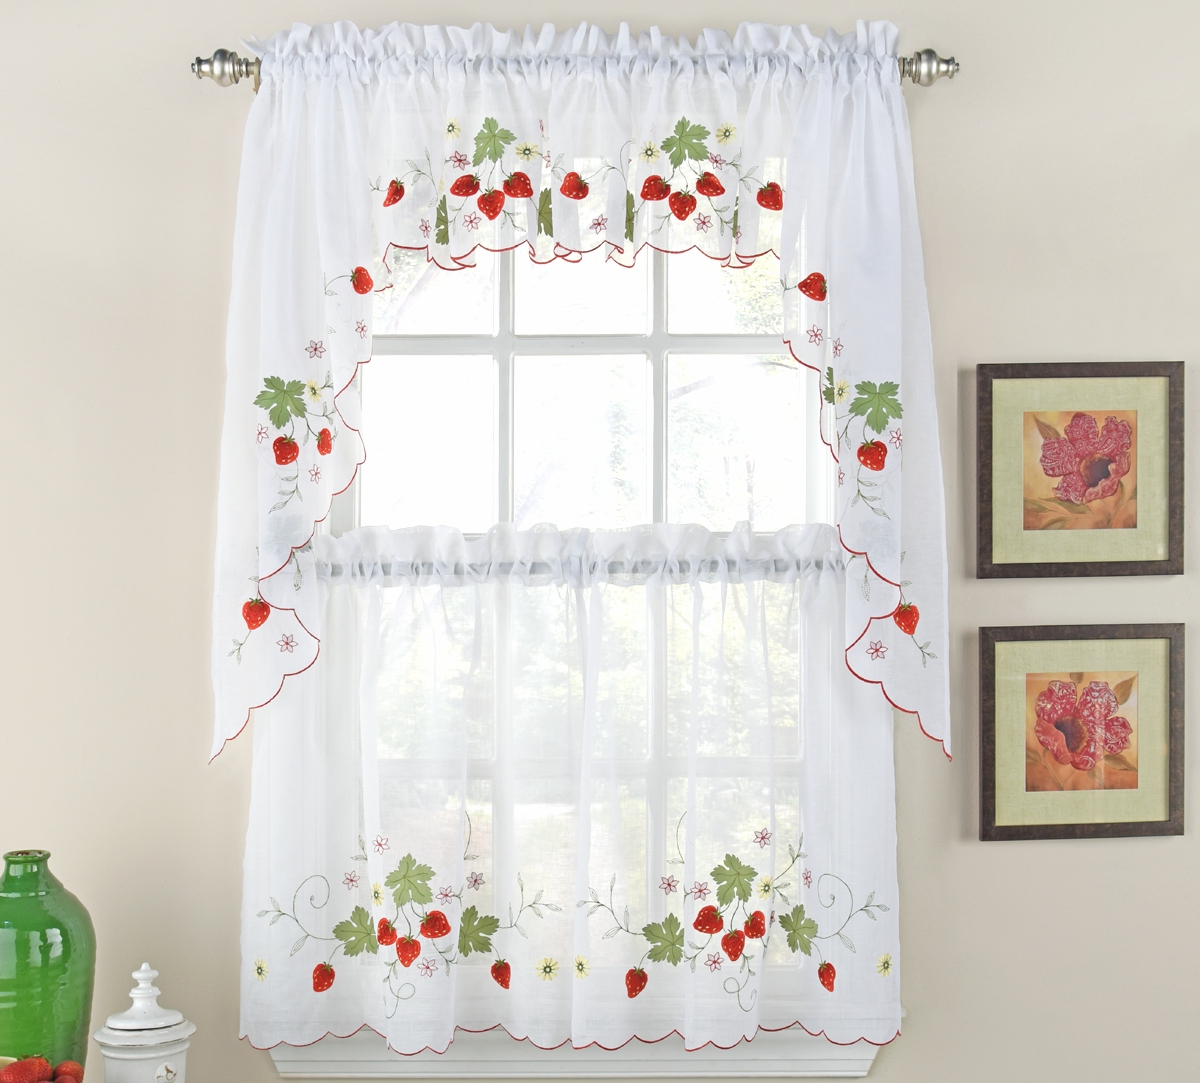 Classic Kitchen Curtain Sets Inside Best And Newest Designer Kitchen Curtains – Thecurtainshop (View 6 of 20)